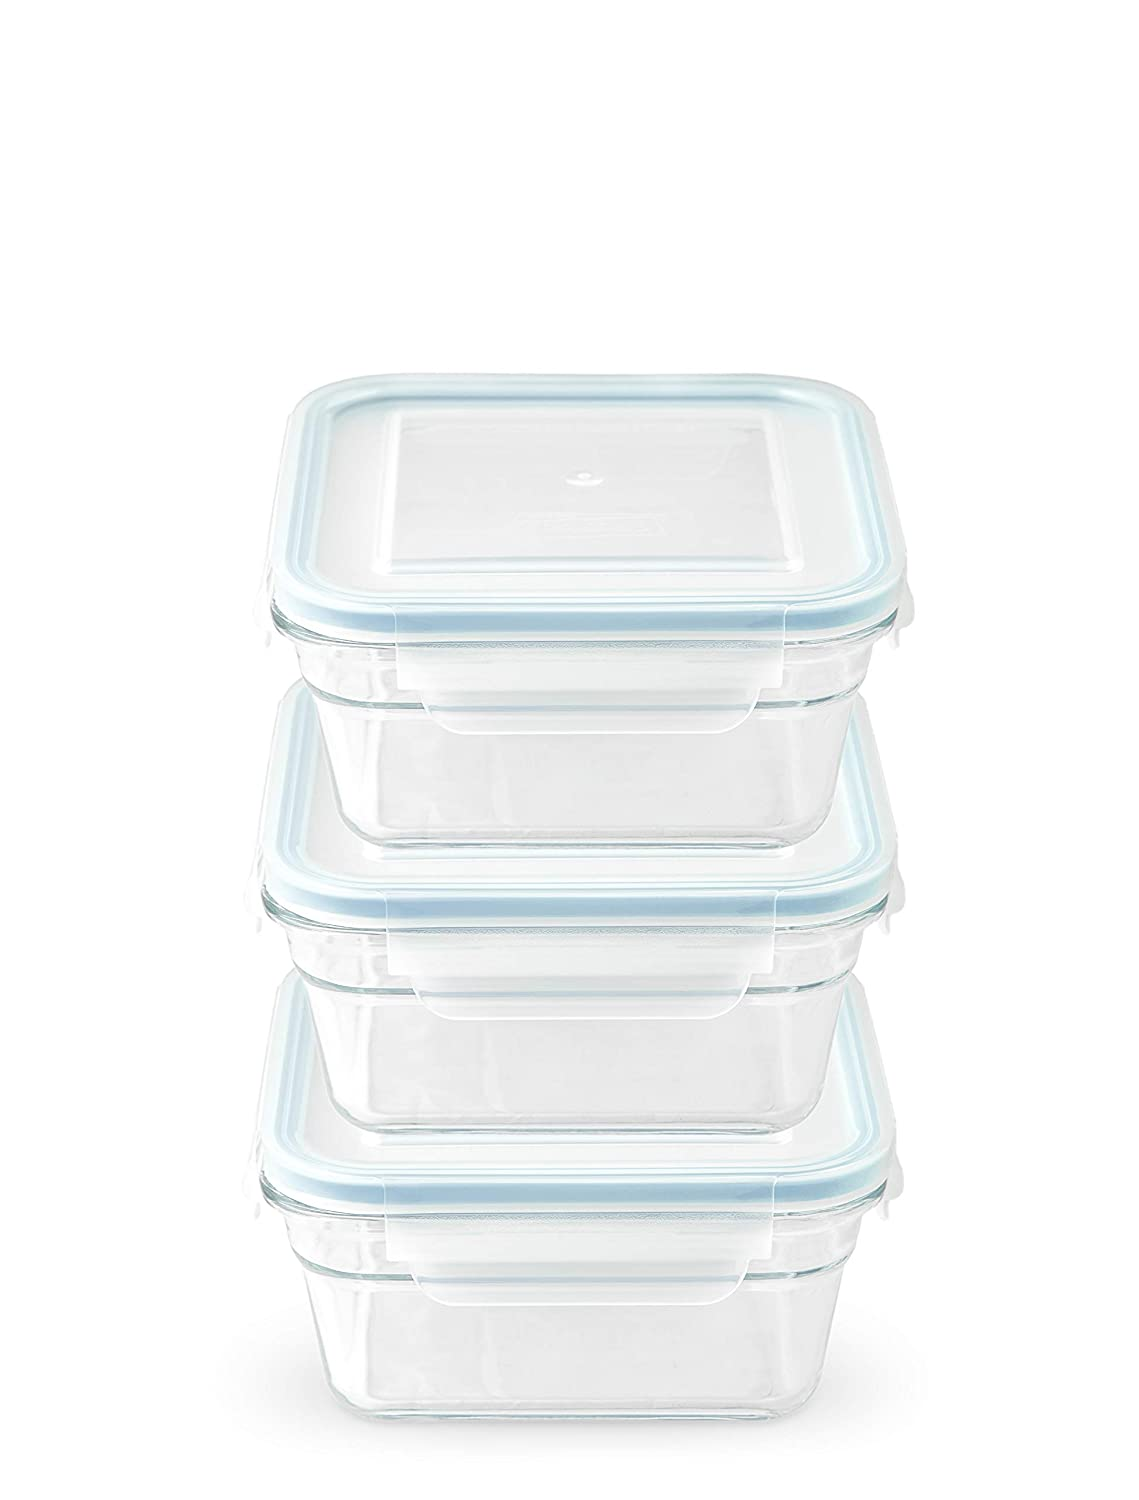 Snaplock Lid Tempered Glasslock Storage Square Container Airtight 3 Container Set Anti Spill Microwave & Oven Safe 1.5cups/355ml